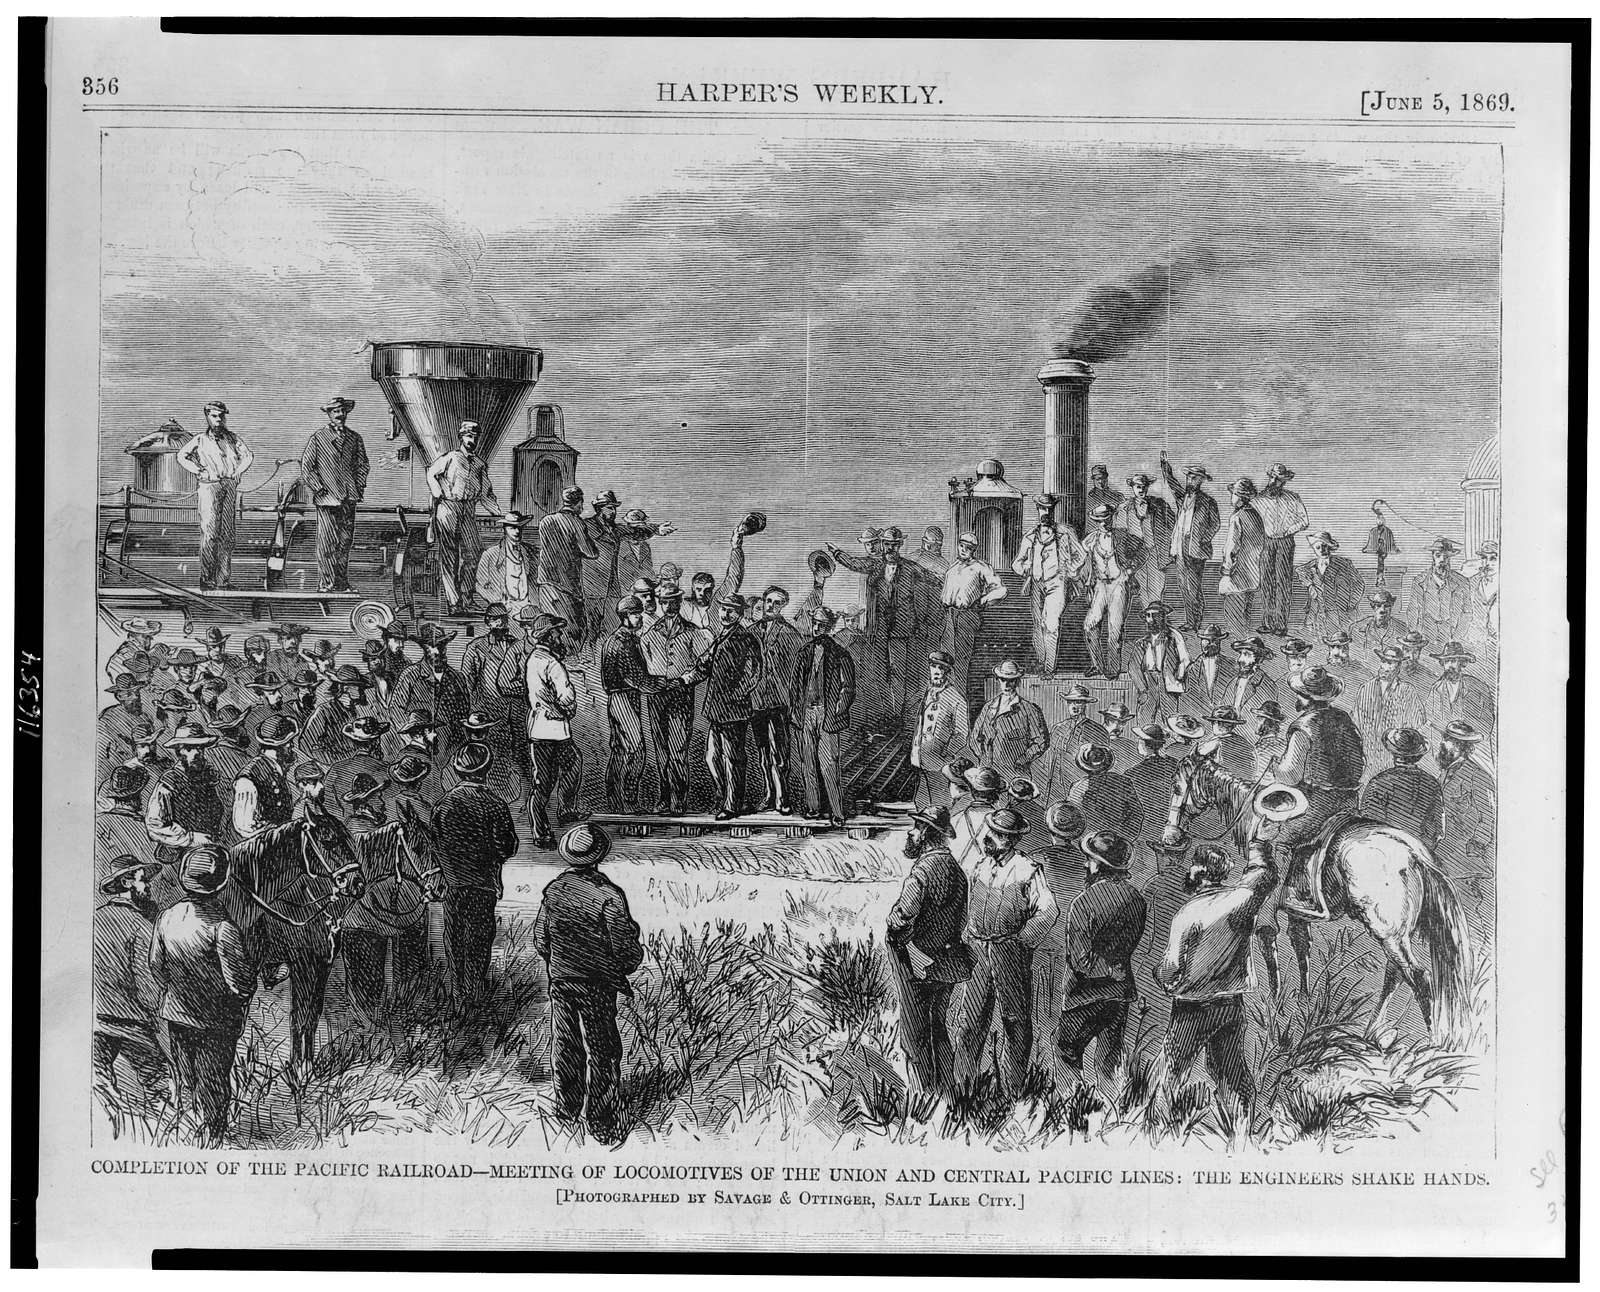 Completion of the Pacific Railroad - meeting of locomotives of the Union and Central Pacific lines: the engineers shake hands